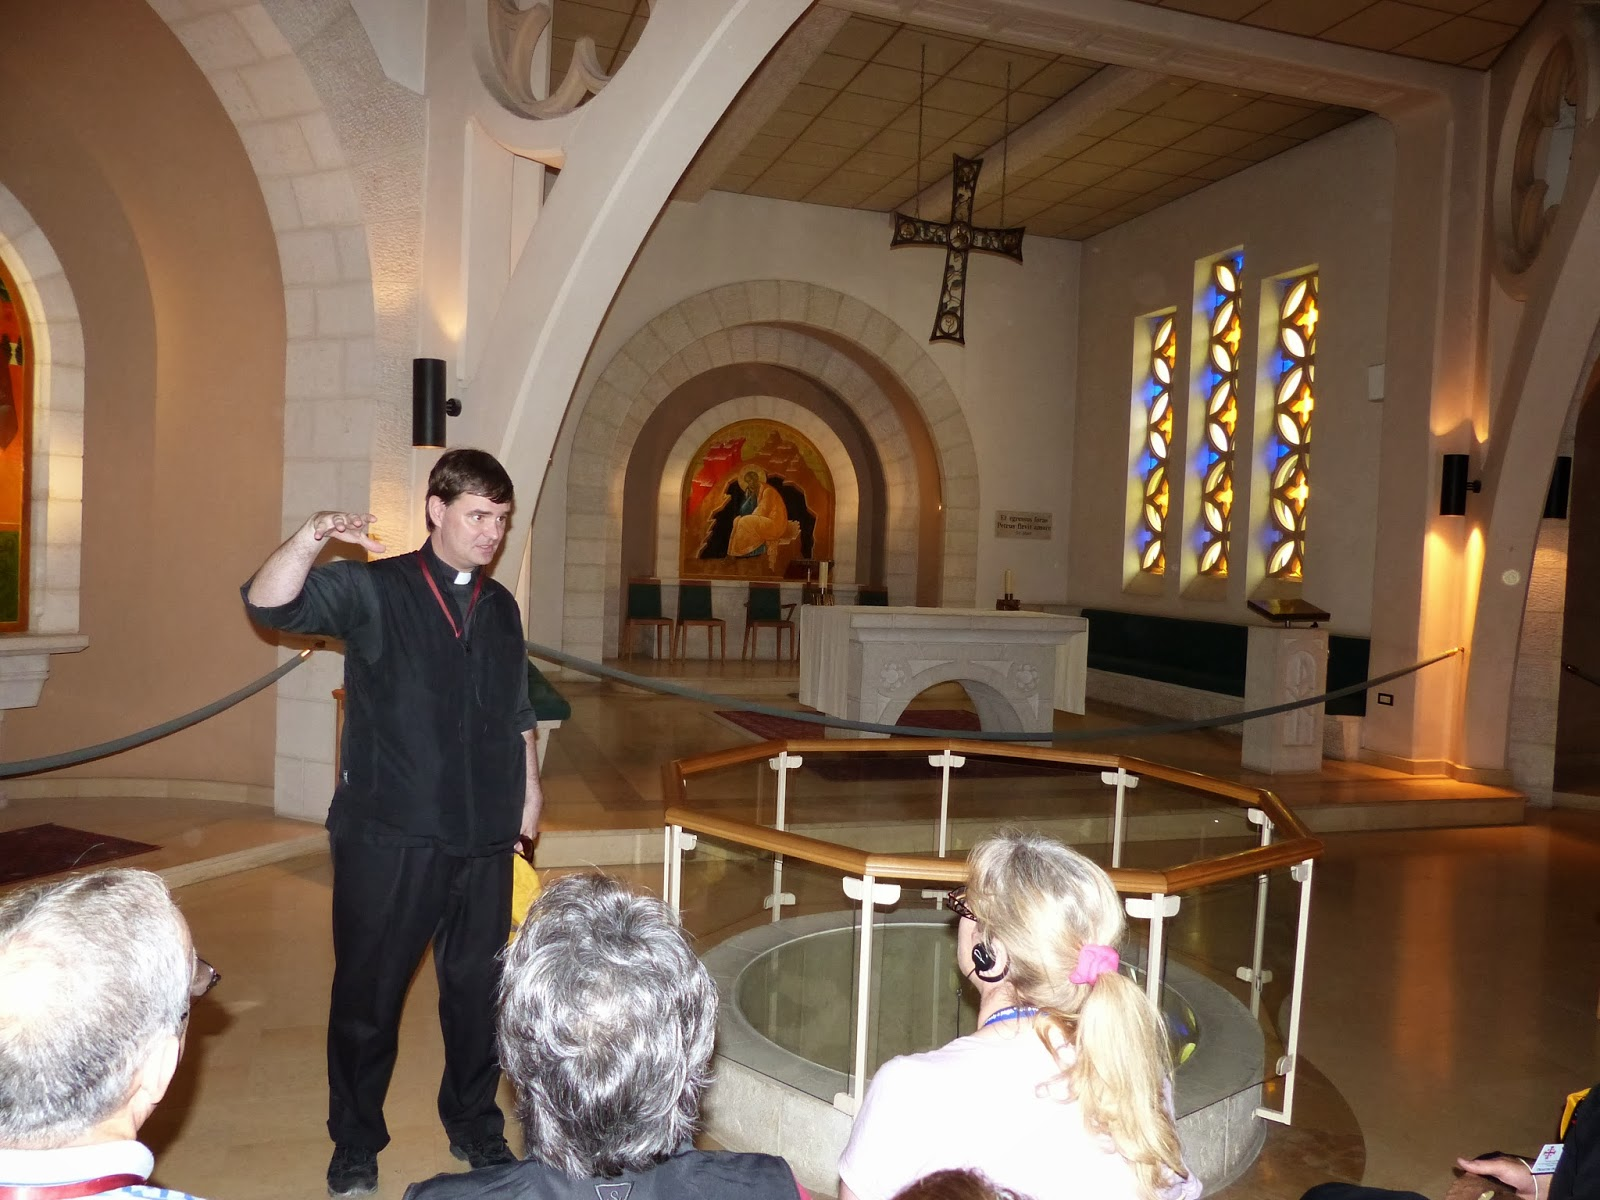 catholic singles in jerusalem Faith focused dating and relationships browse profiles & photos of israeli catholic singles and join catholicmatchcom, the clear leader in online dating for catholics with more catholic singles than any other catholic dating site.